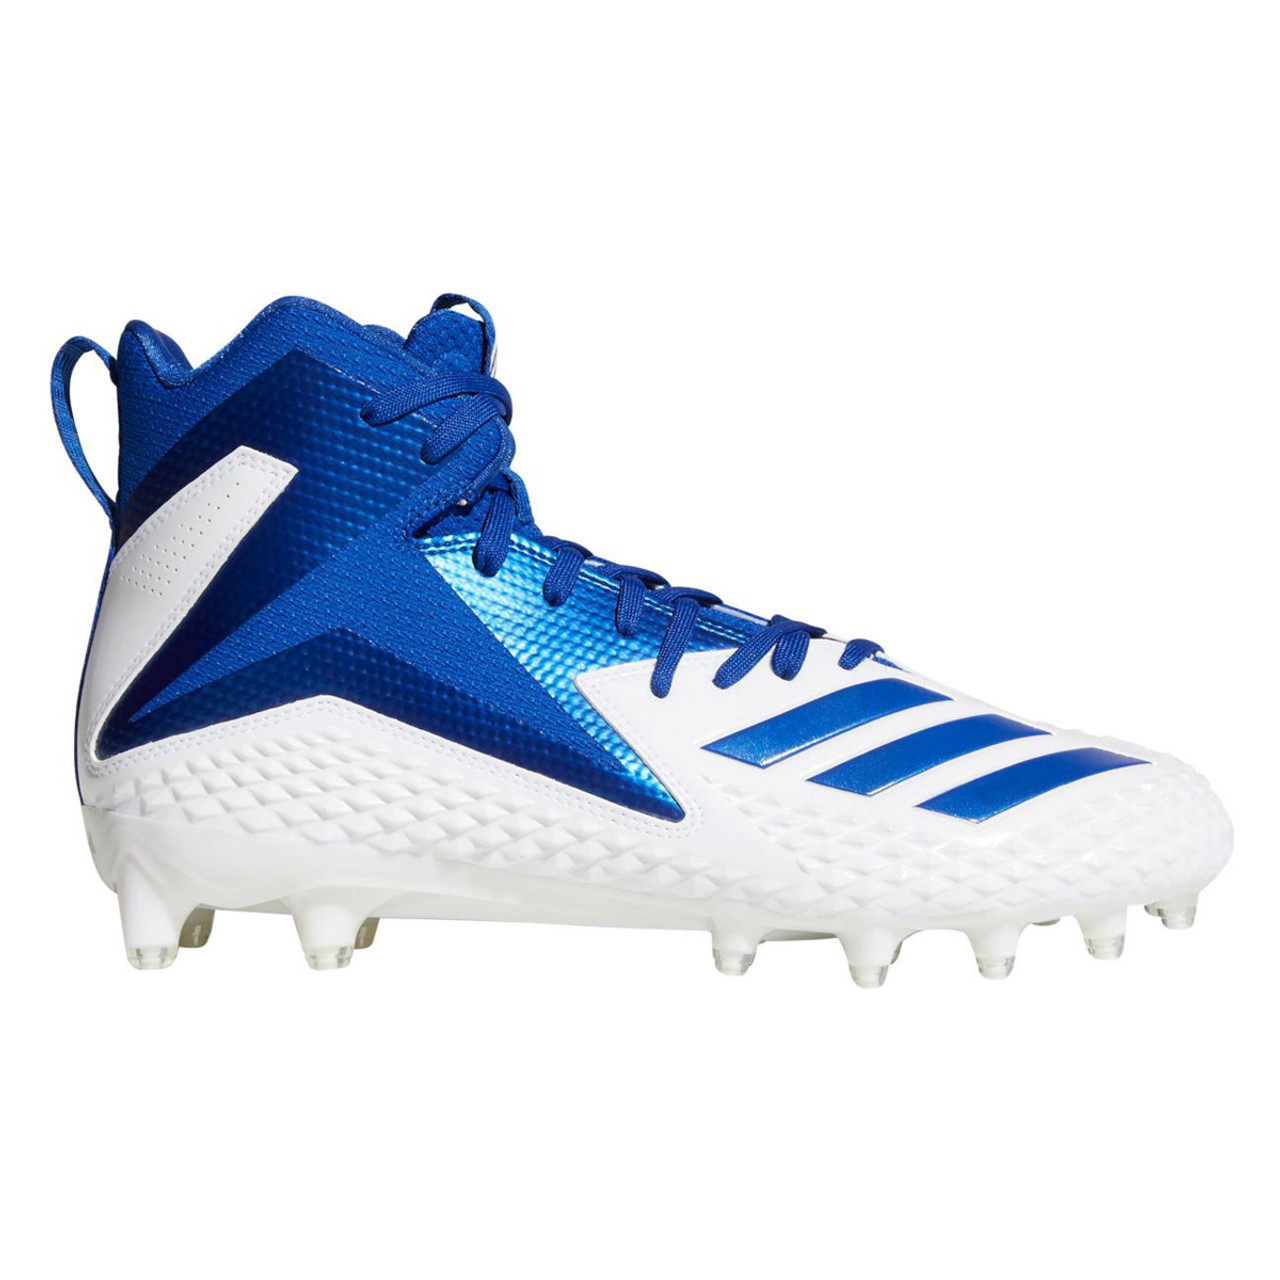 39ed563bc62 Adidas Freak X Carbon Mid Men s Football Cleats DB0566 - White ...